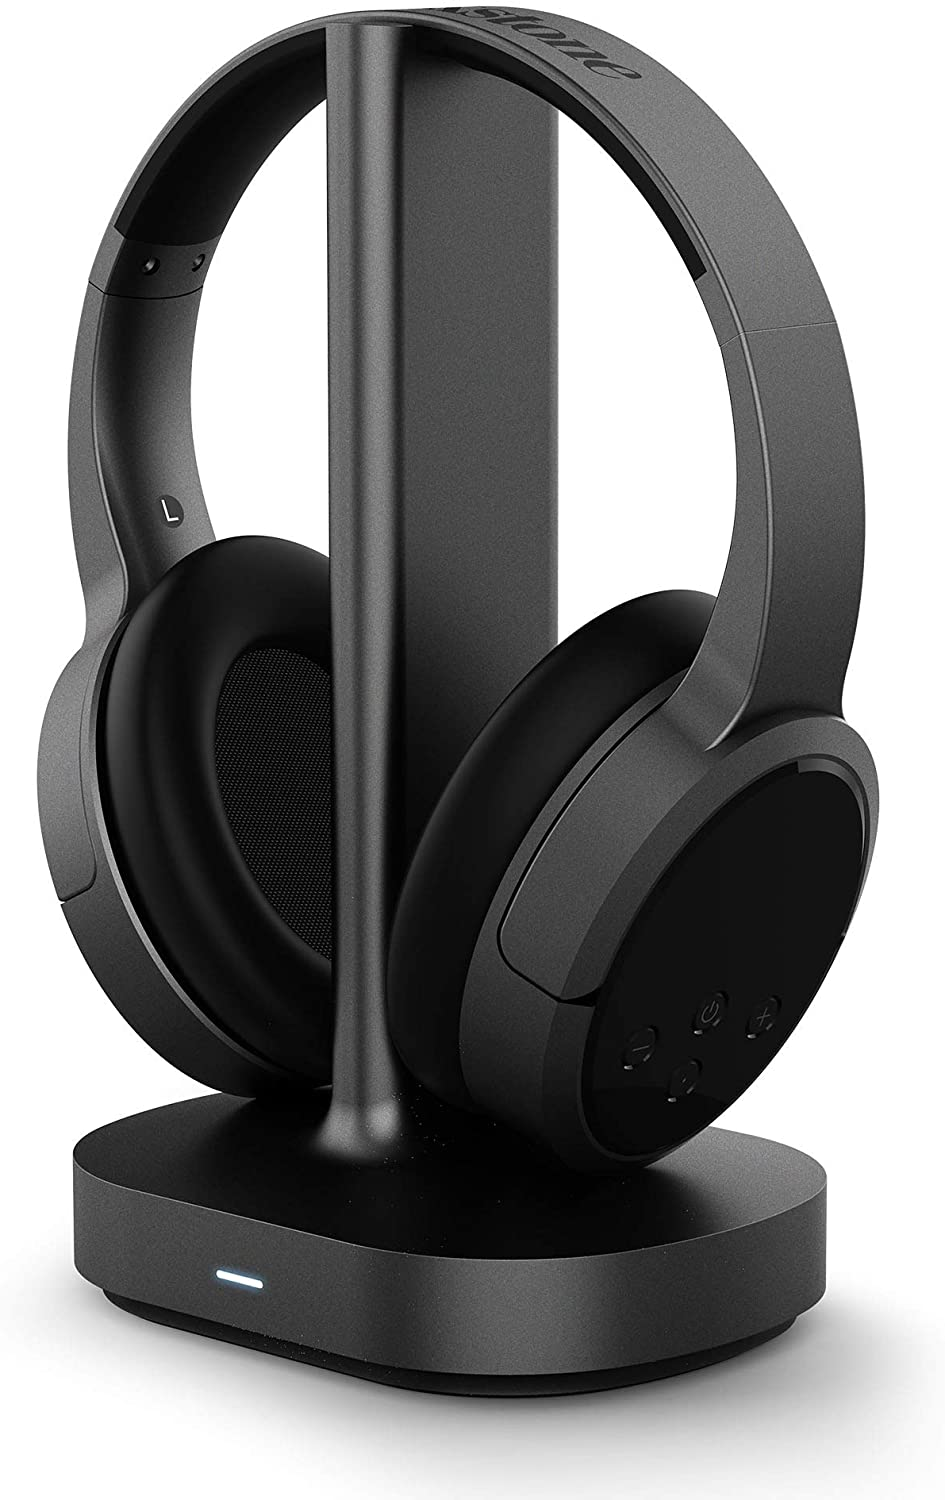 Amazon Com Brookstone Airphones Wireless Rf Tv Headphones With 2 4ghz Wireless Audio Charging Dock 100ft Wireless Range 10hrs Playtime Comfortable Ear Pads Black Support Optical 3 5mm Aux Rca Audio Out Electronics